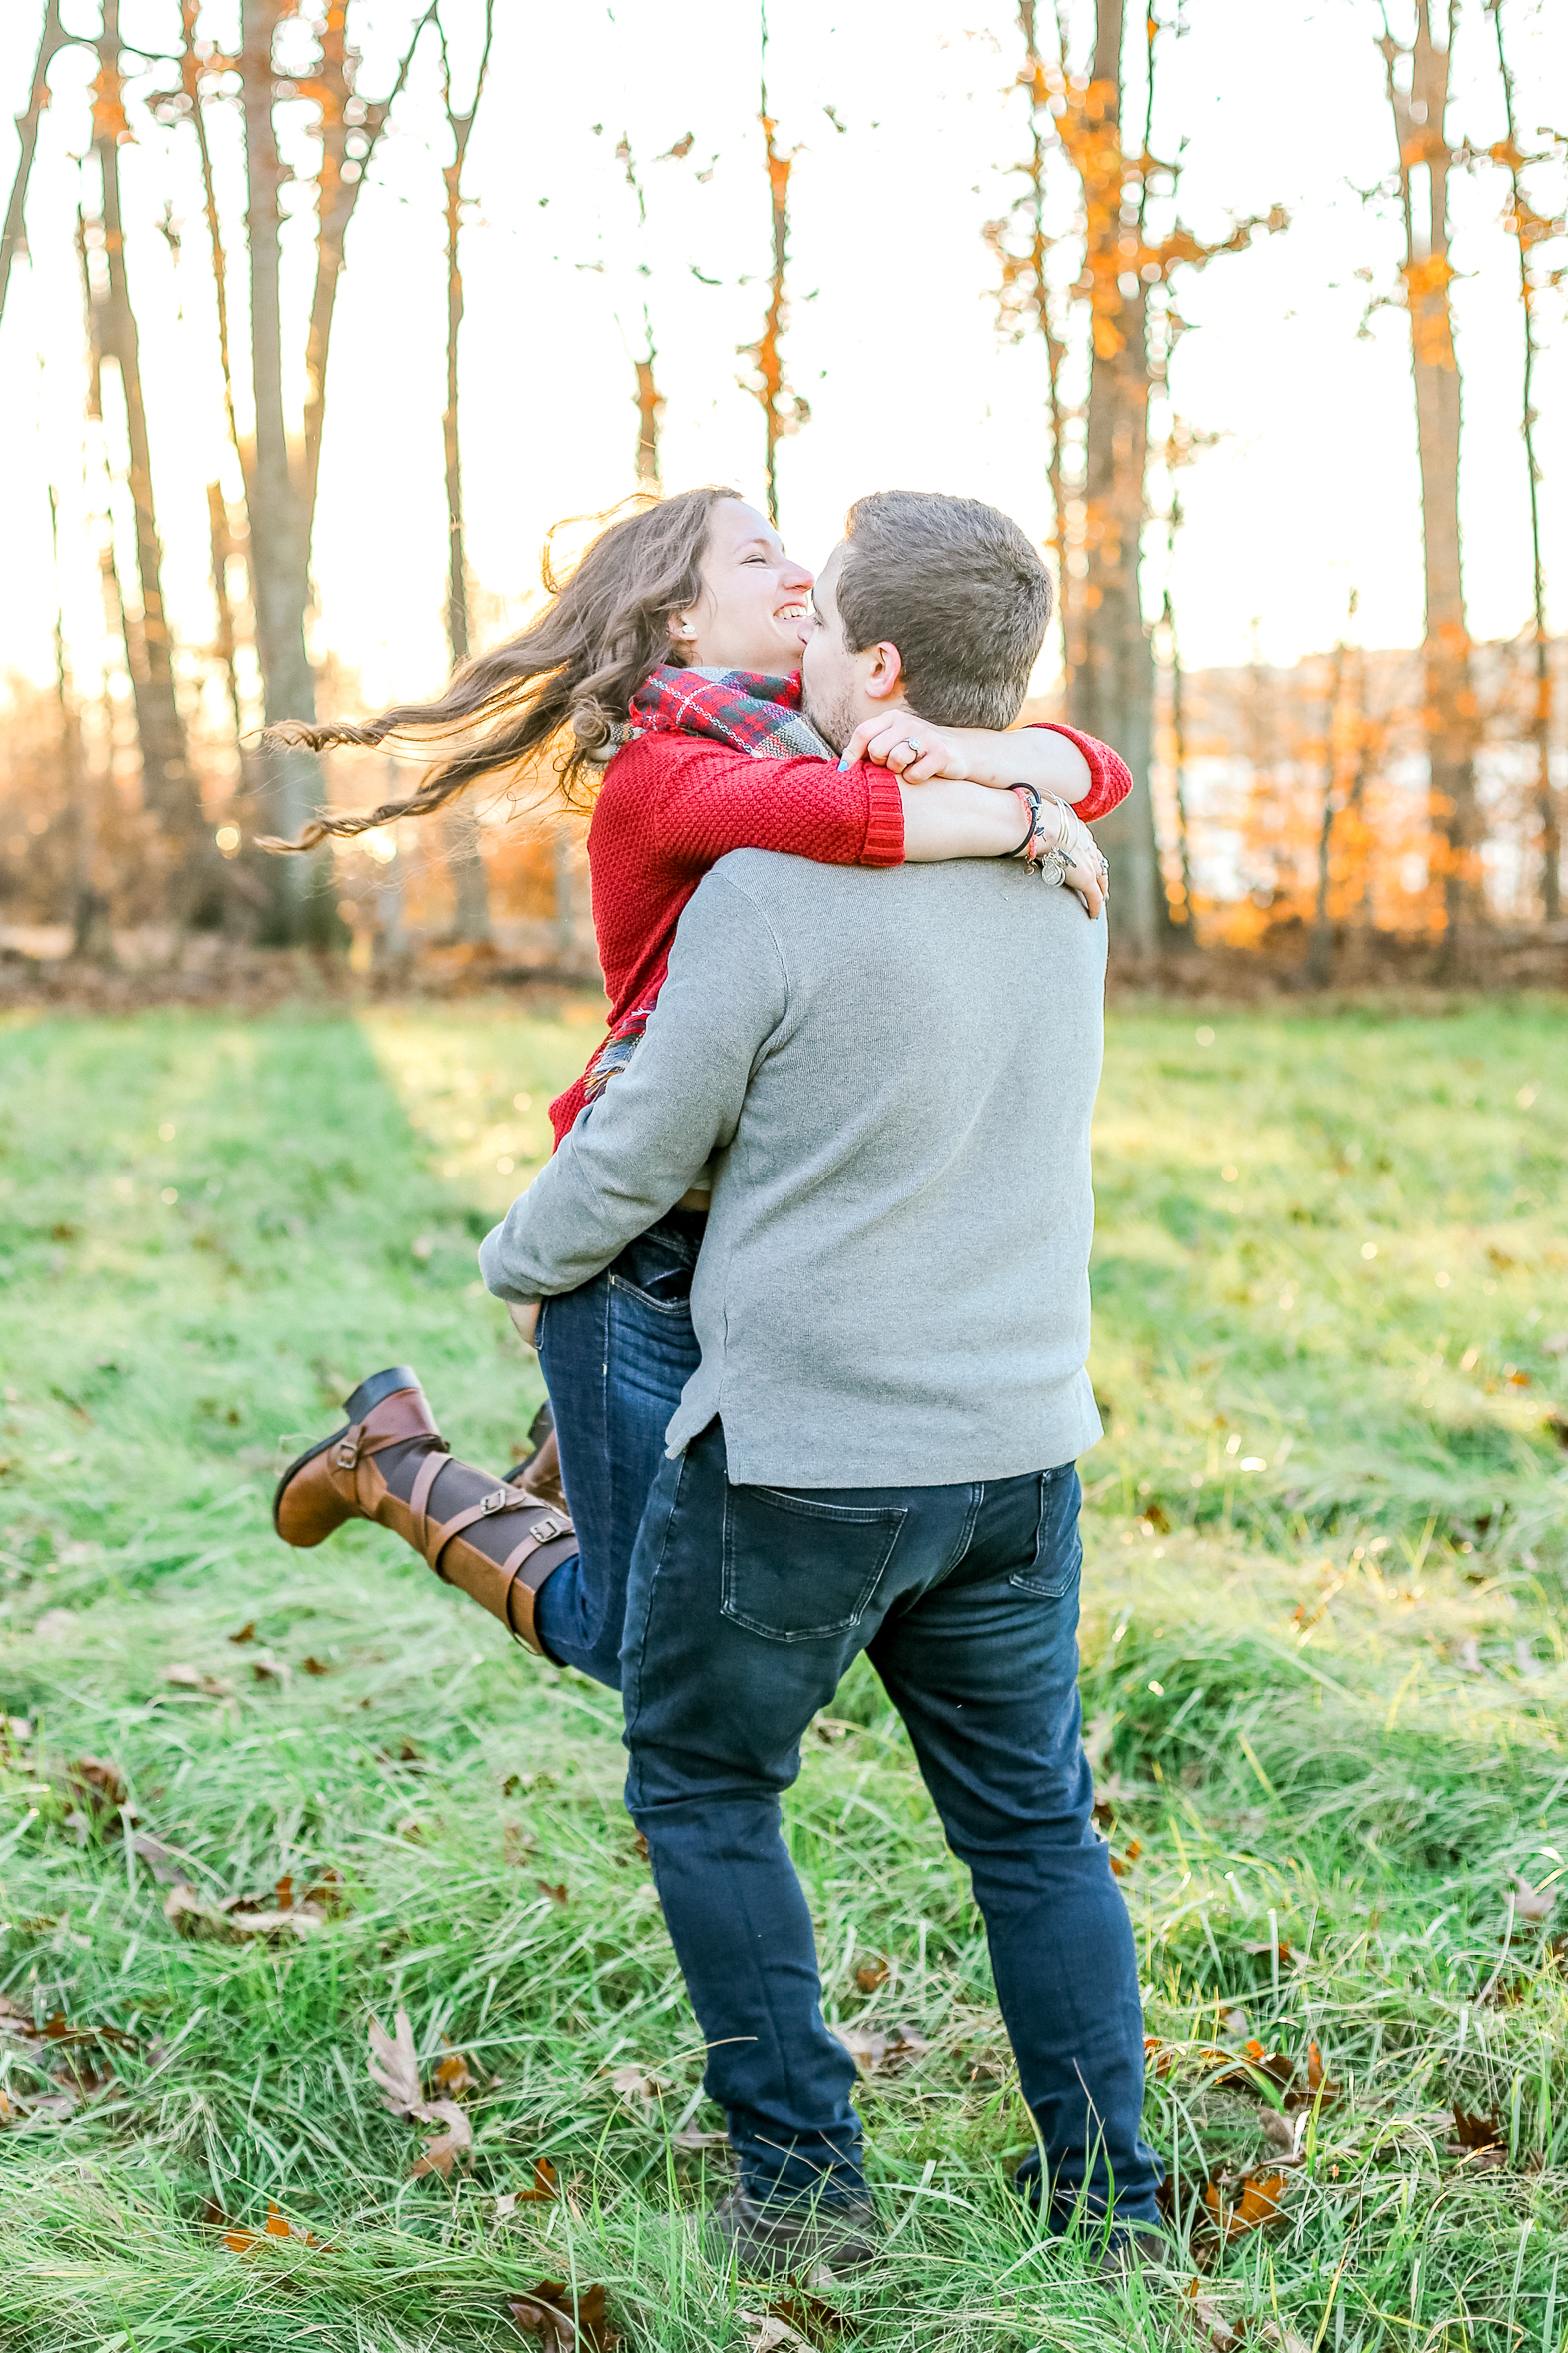 Bucks county Peace Valley Park Doylestown Lehigh Valley fall windy engagement session wedding and lifestyle photographer Lytle Photo Co (69 of 109).jpg